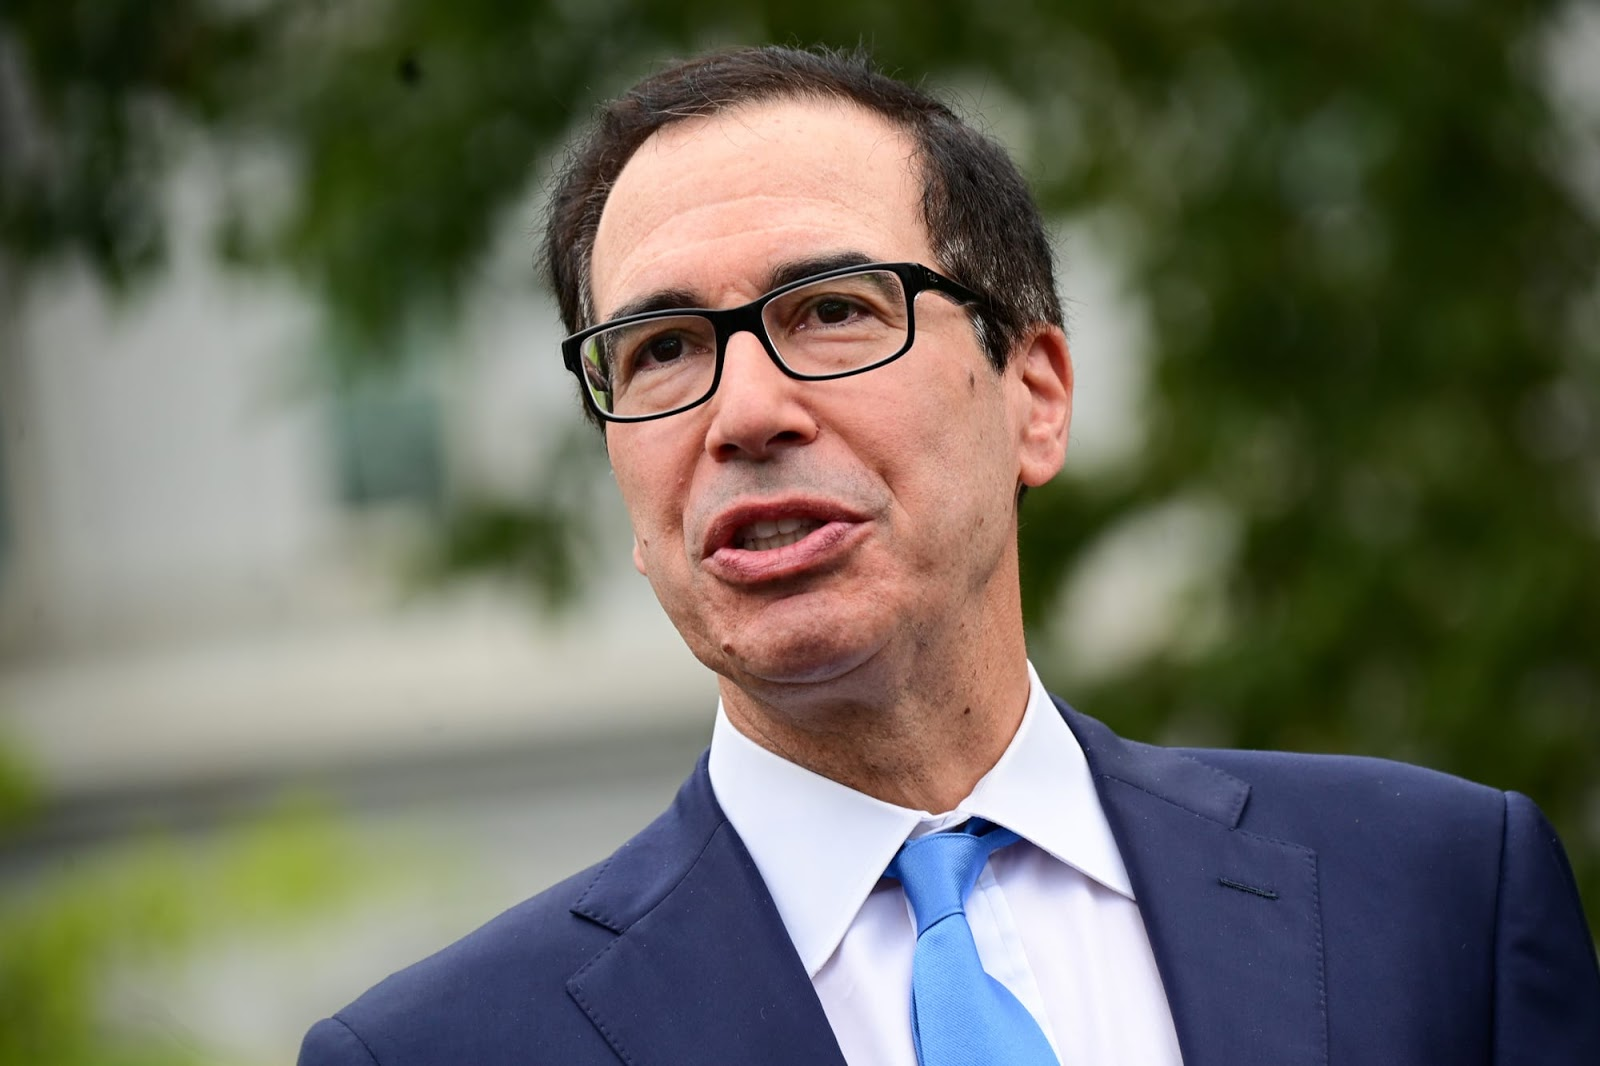 - U.S. Treasury Secretary Steven Mnuchin announces that the U.S. is considering the institution of a new 50-year bond next year.